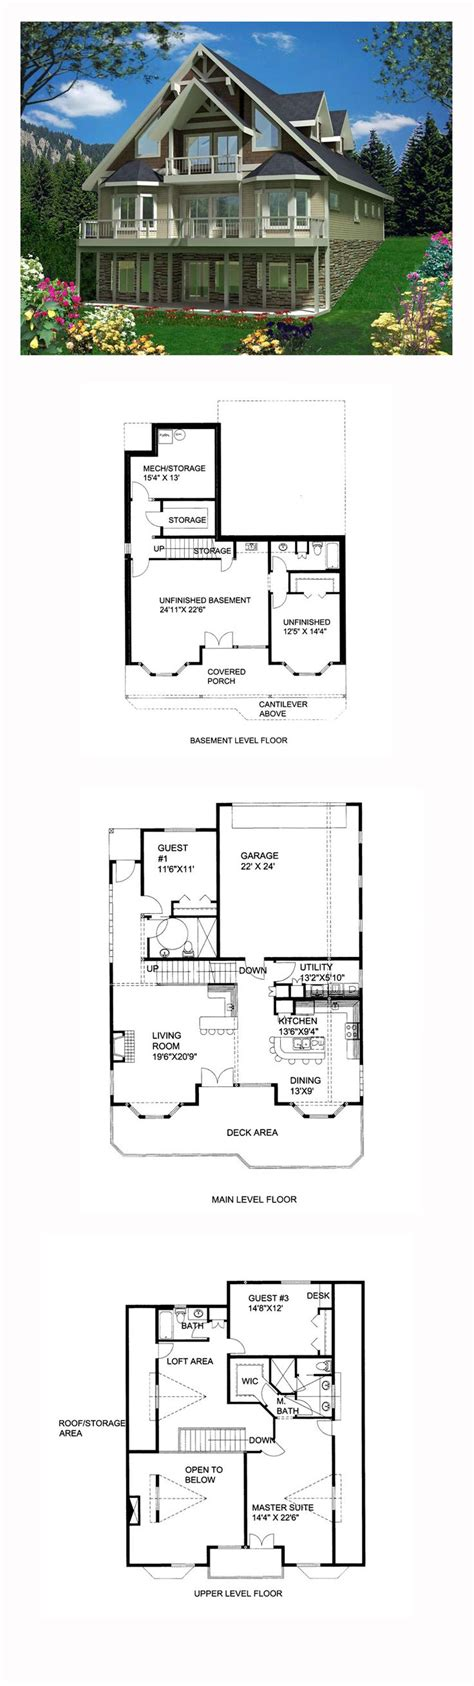 steep slope house plans 29 best images about steep slope house plans on green roofs house plans and